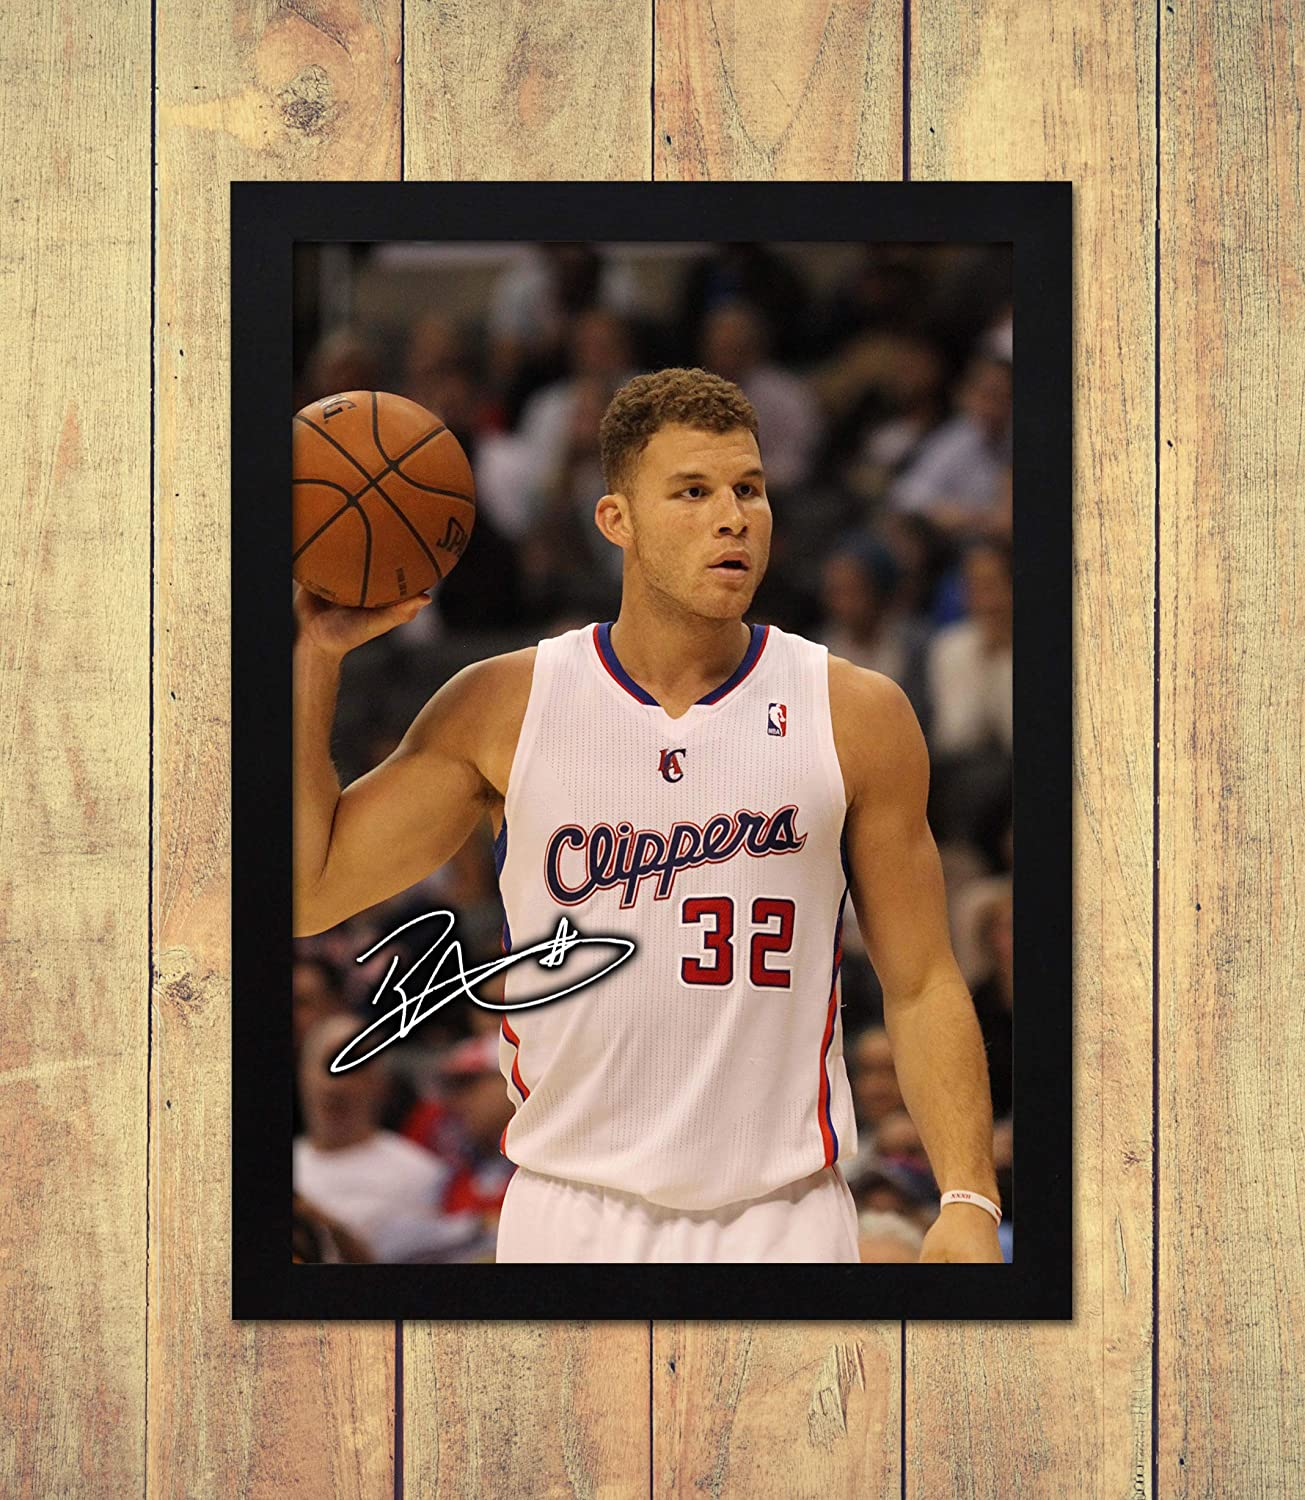 A4 Los Angeles Clippers High Gloss Personalised Printed Poster Star Prints Blake Griffin NBA 3 210 x 297 mm